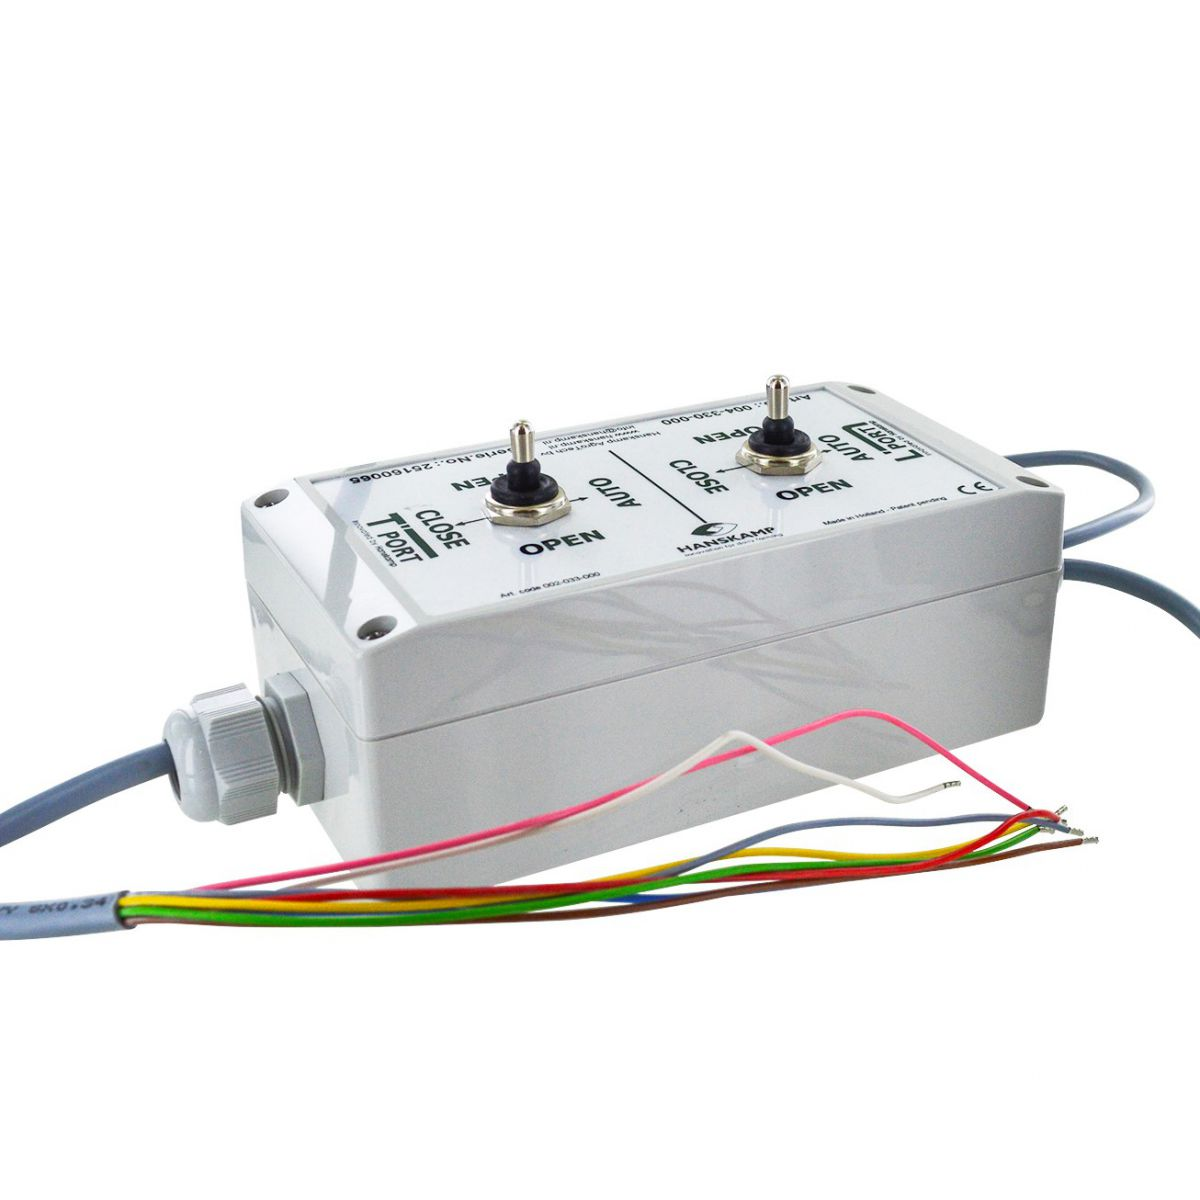 control box tport with double cable gland with 2x 3position switch